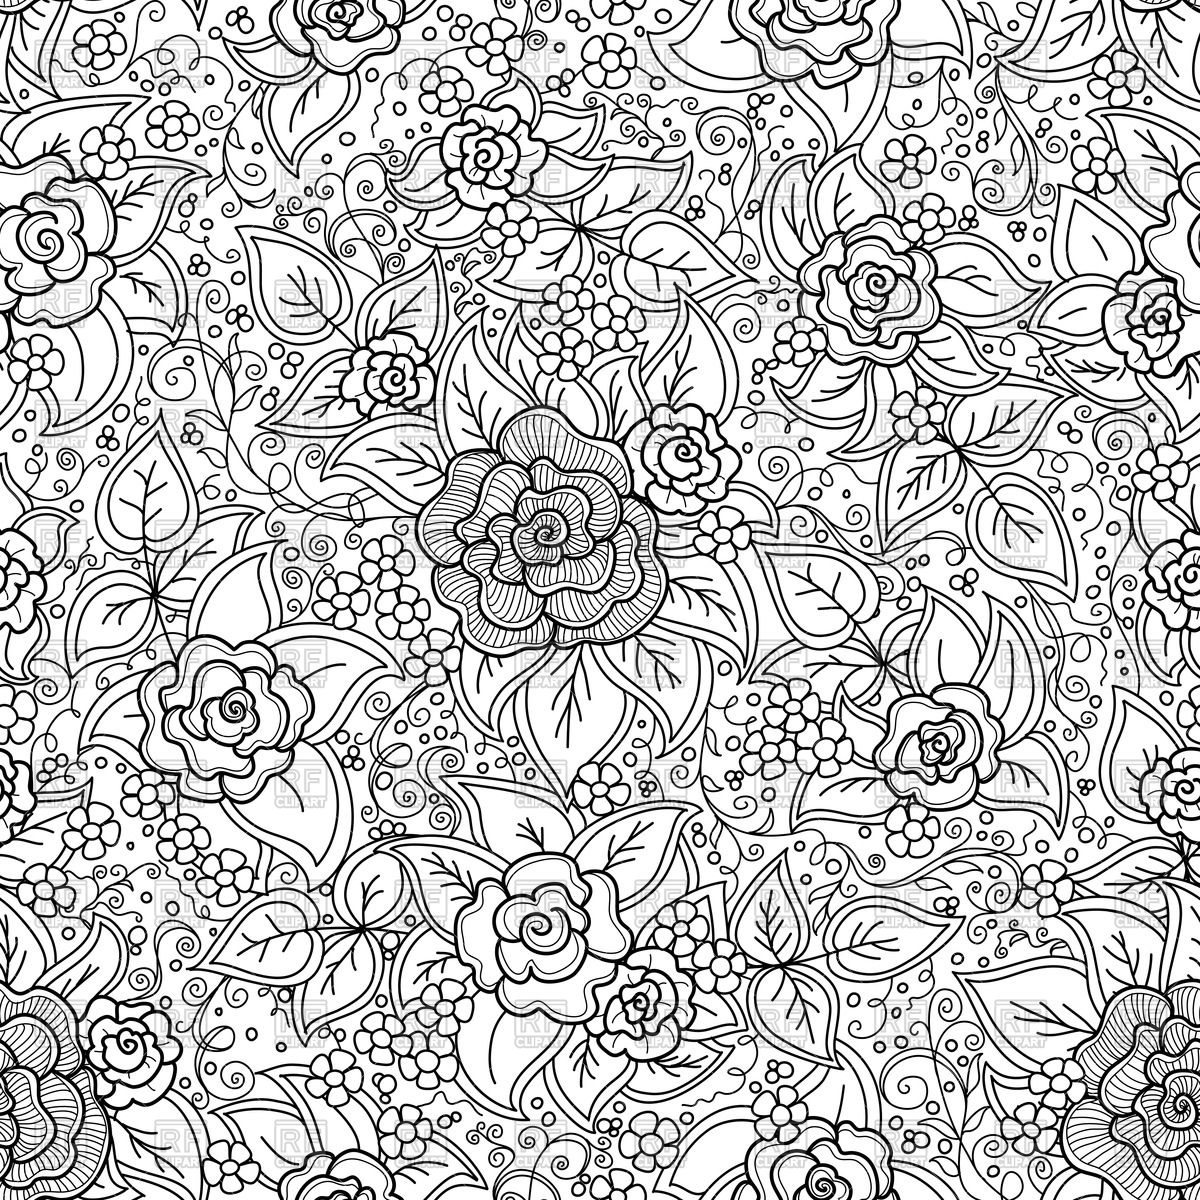 1200x1200 Seamless Black And White Pattern With Doodle Roses Vector Image